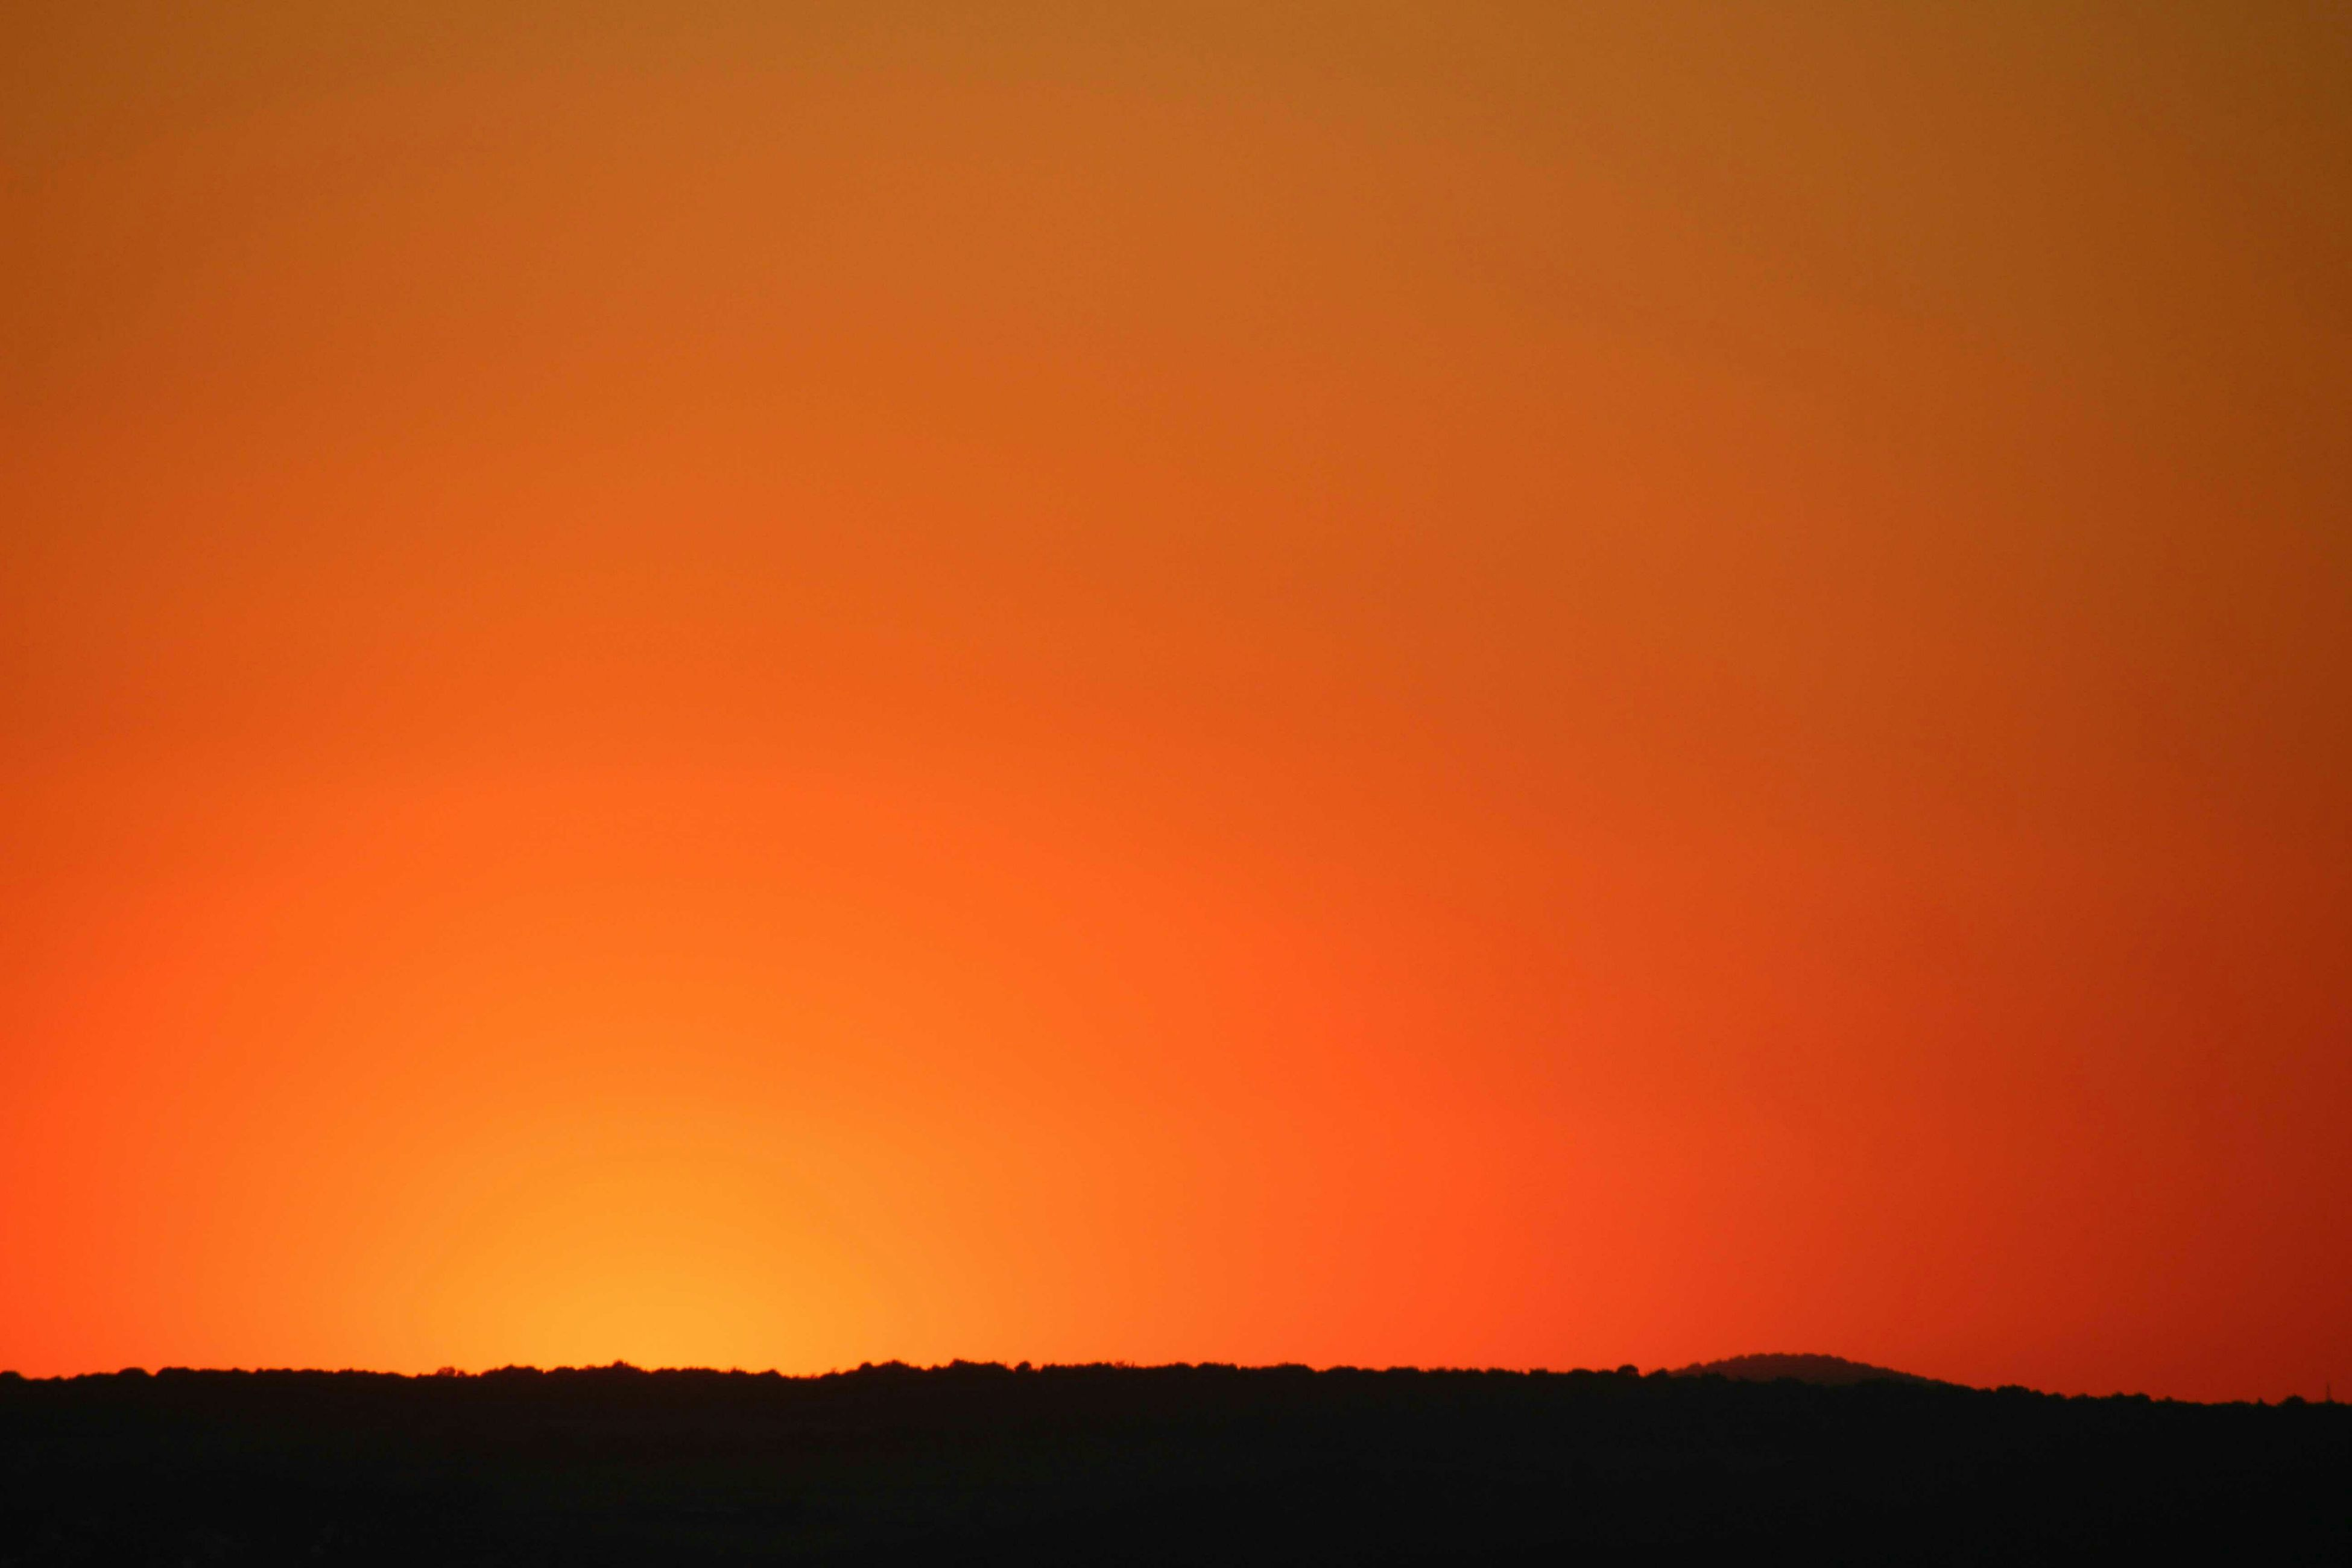 sunset, copy space, orange color, silhouette, tranquil scene, clear sky, scenics, tranquility, beauty in nature, landscape, nature, idyllic, dark, horizon over land, outdoors, no people, dusk, remote, majestic, non-urban scene